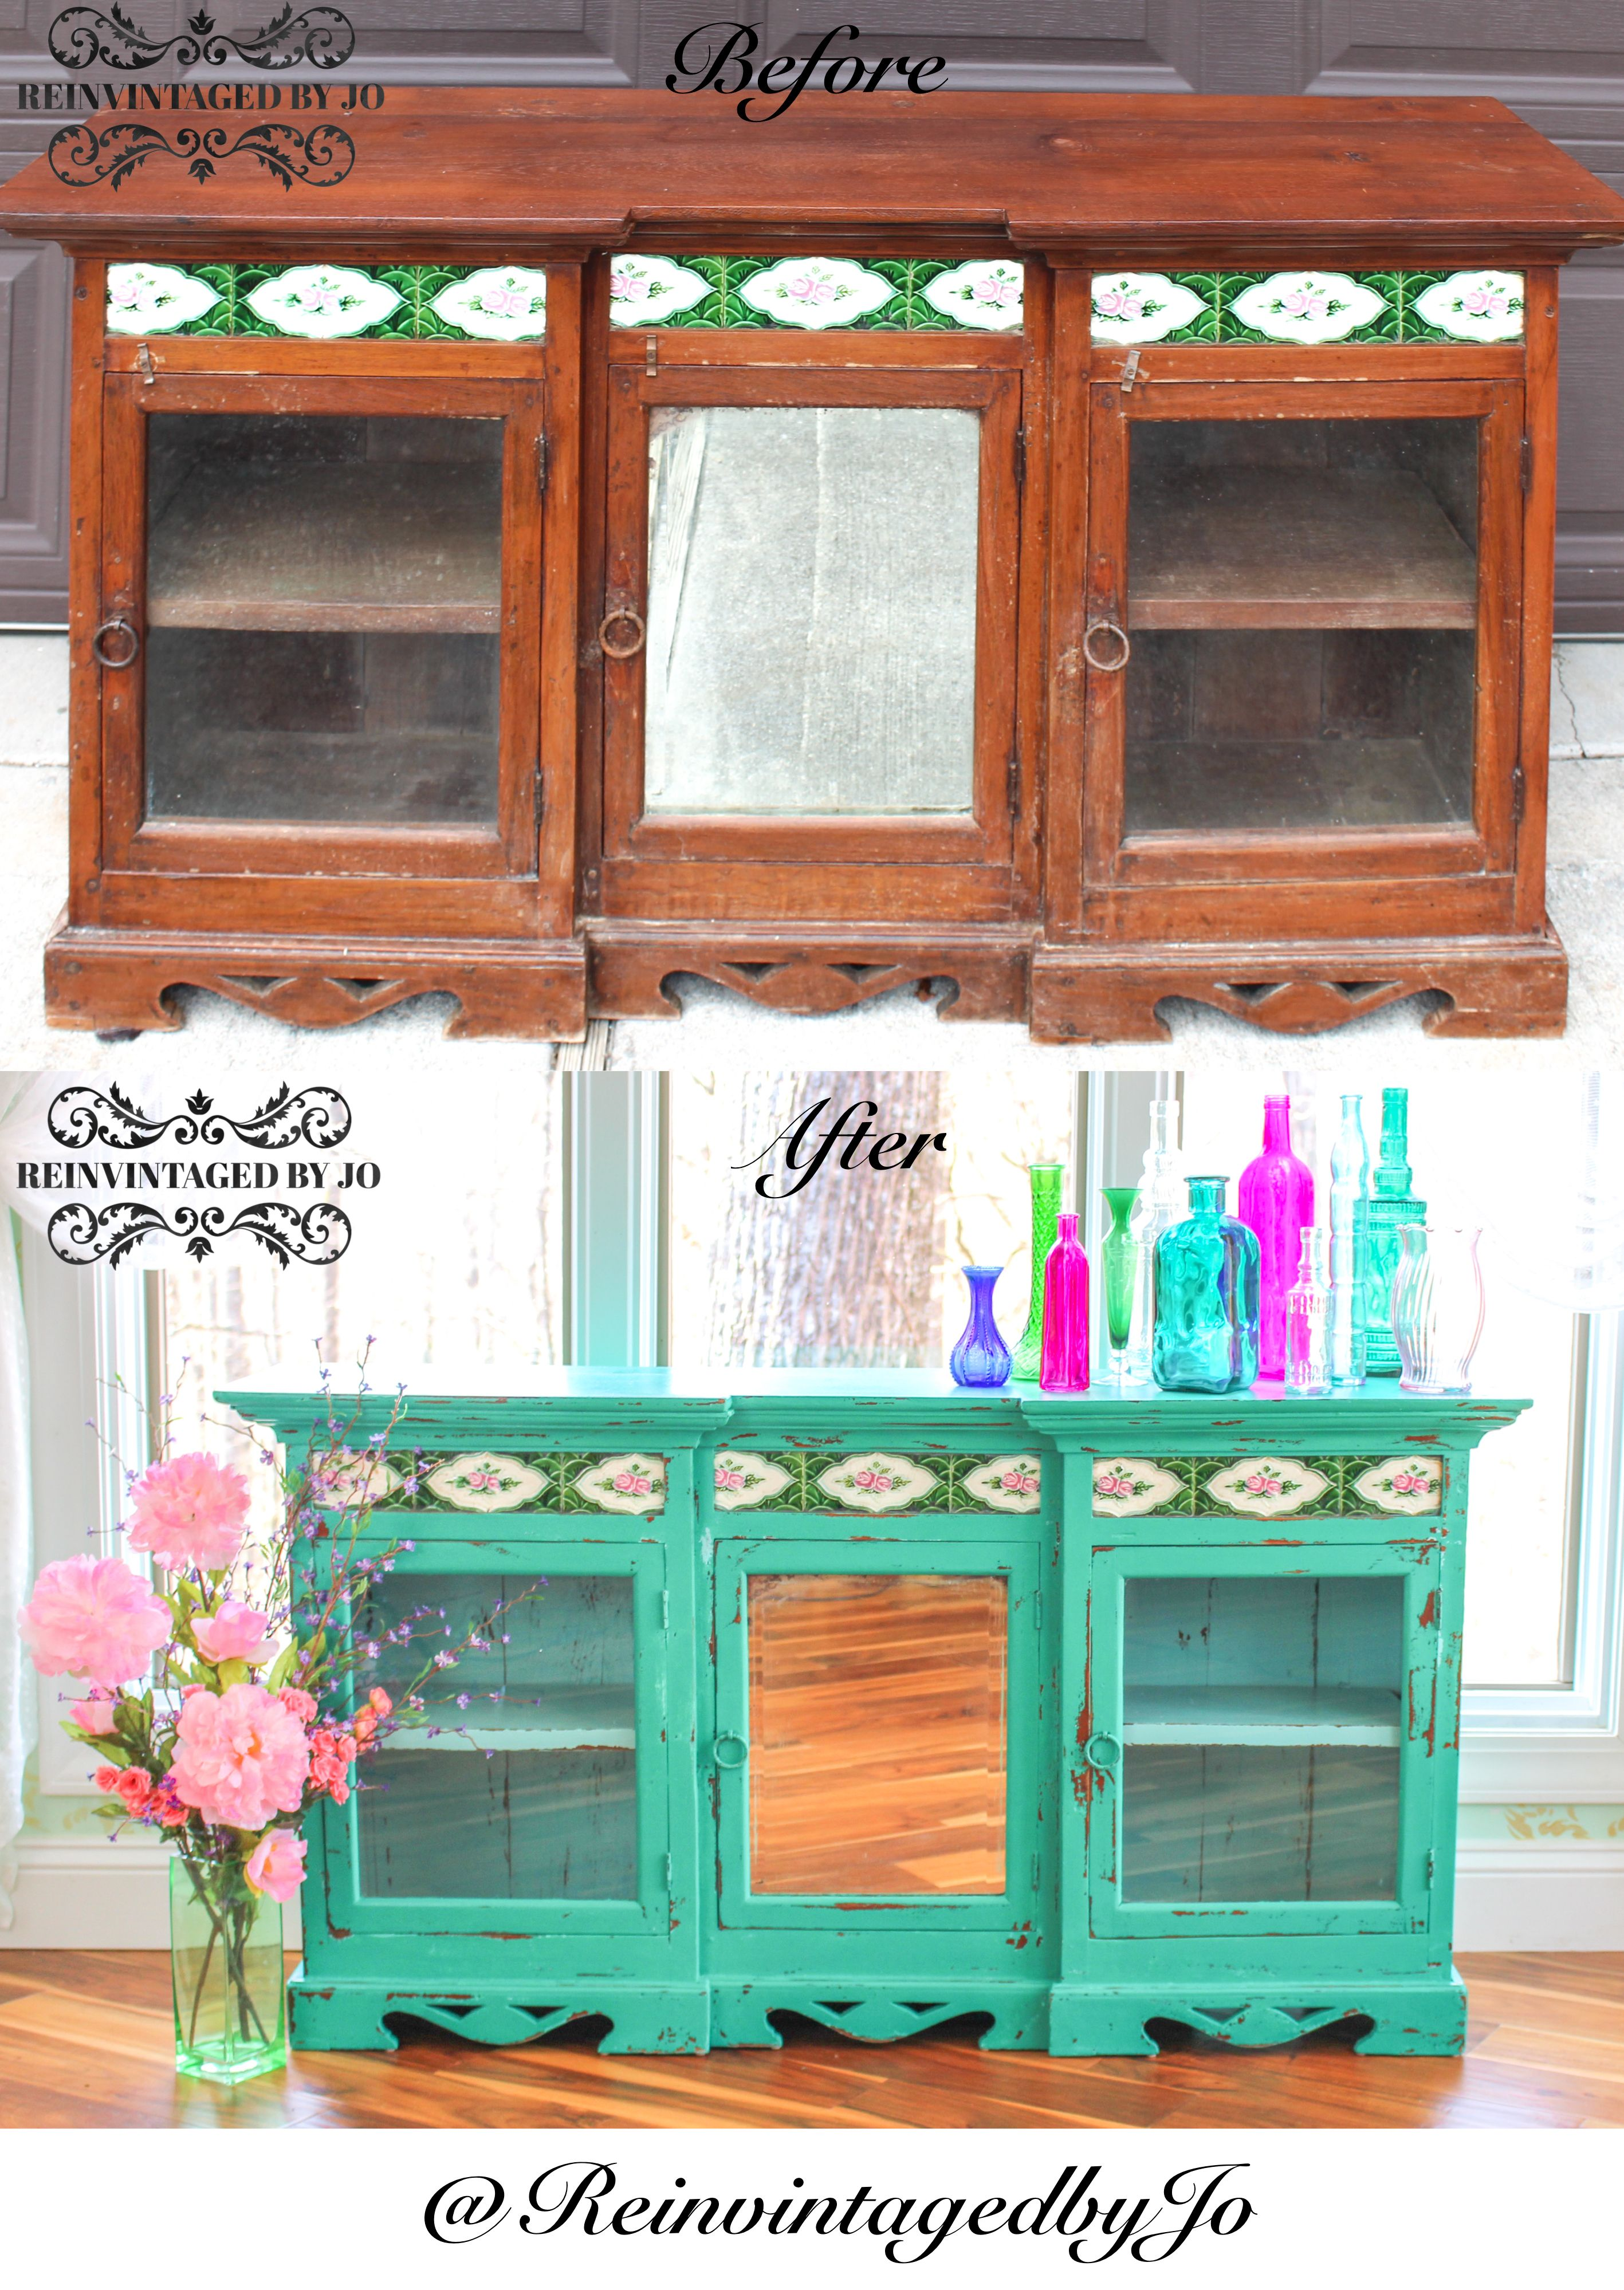 Reinvintaged By Jo Handpainted Turquoise Green Hutch Bookshelf Bookcase Storage Buffet Server Light Blue Interior Distressed Eclectic Bohemian Boho